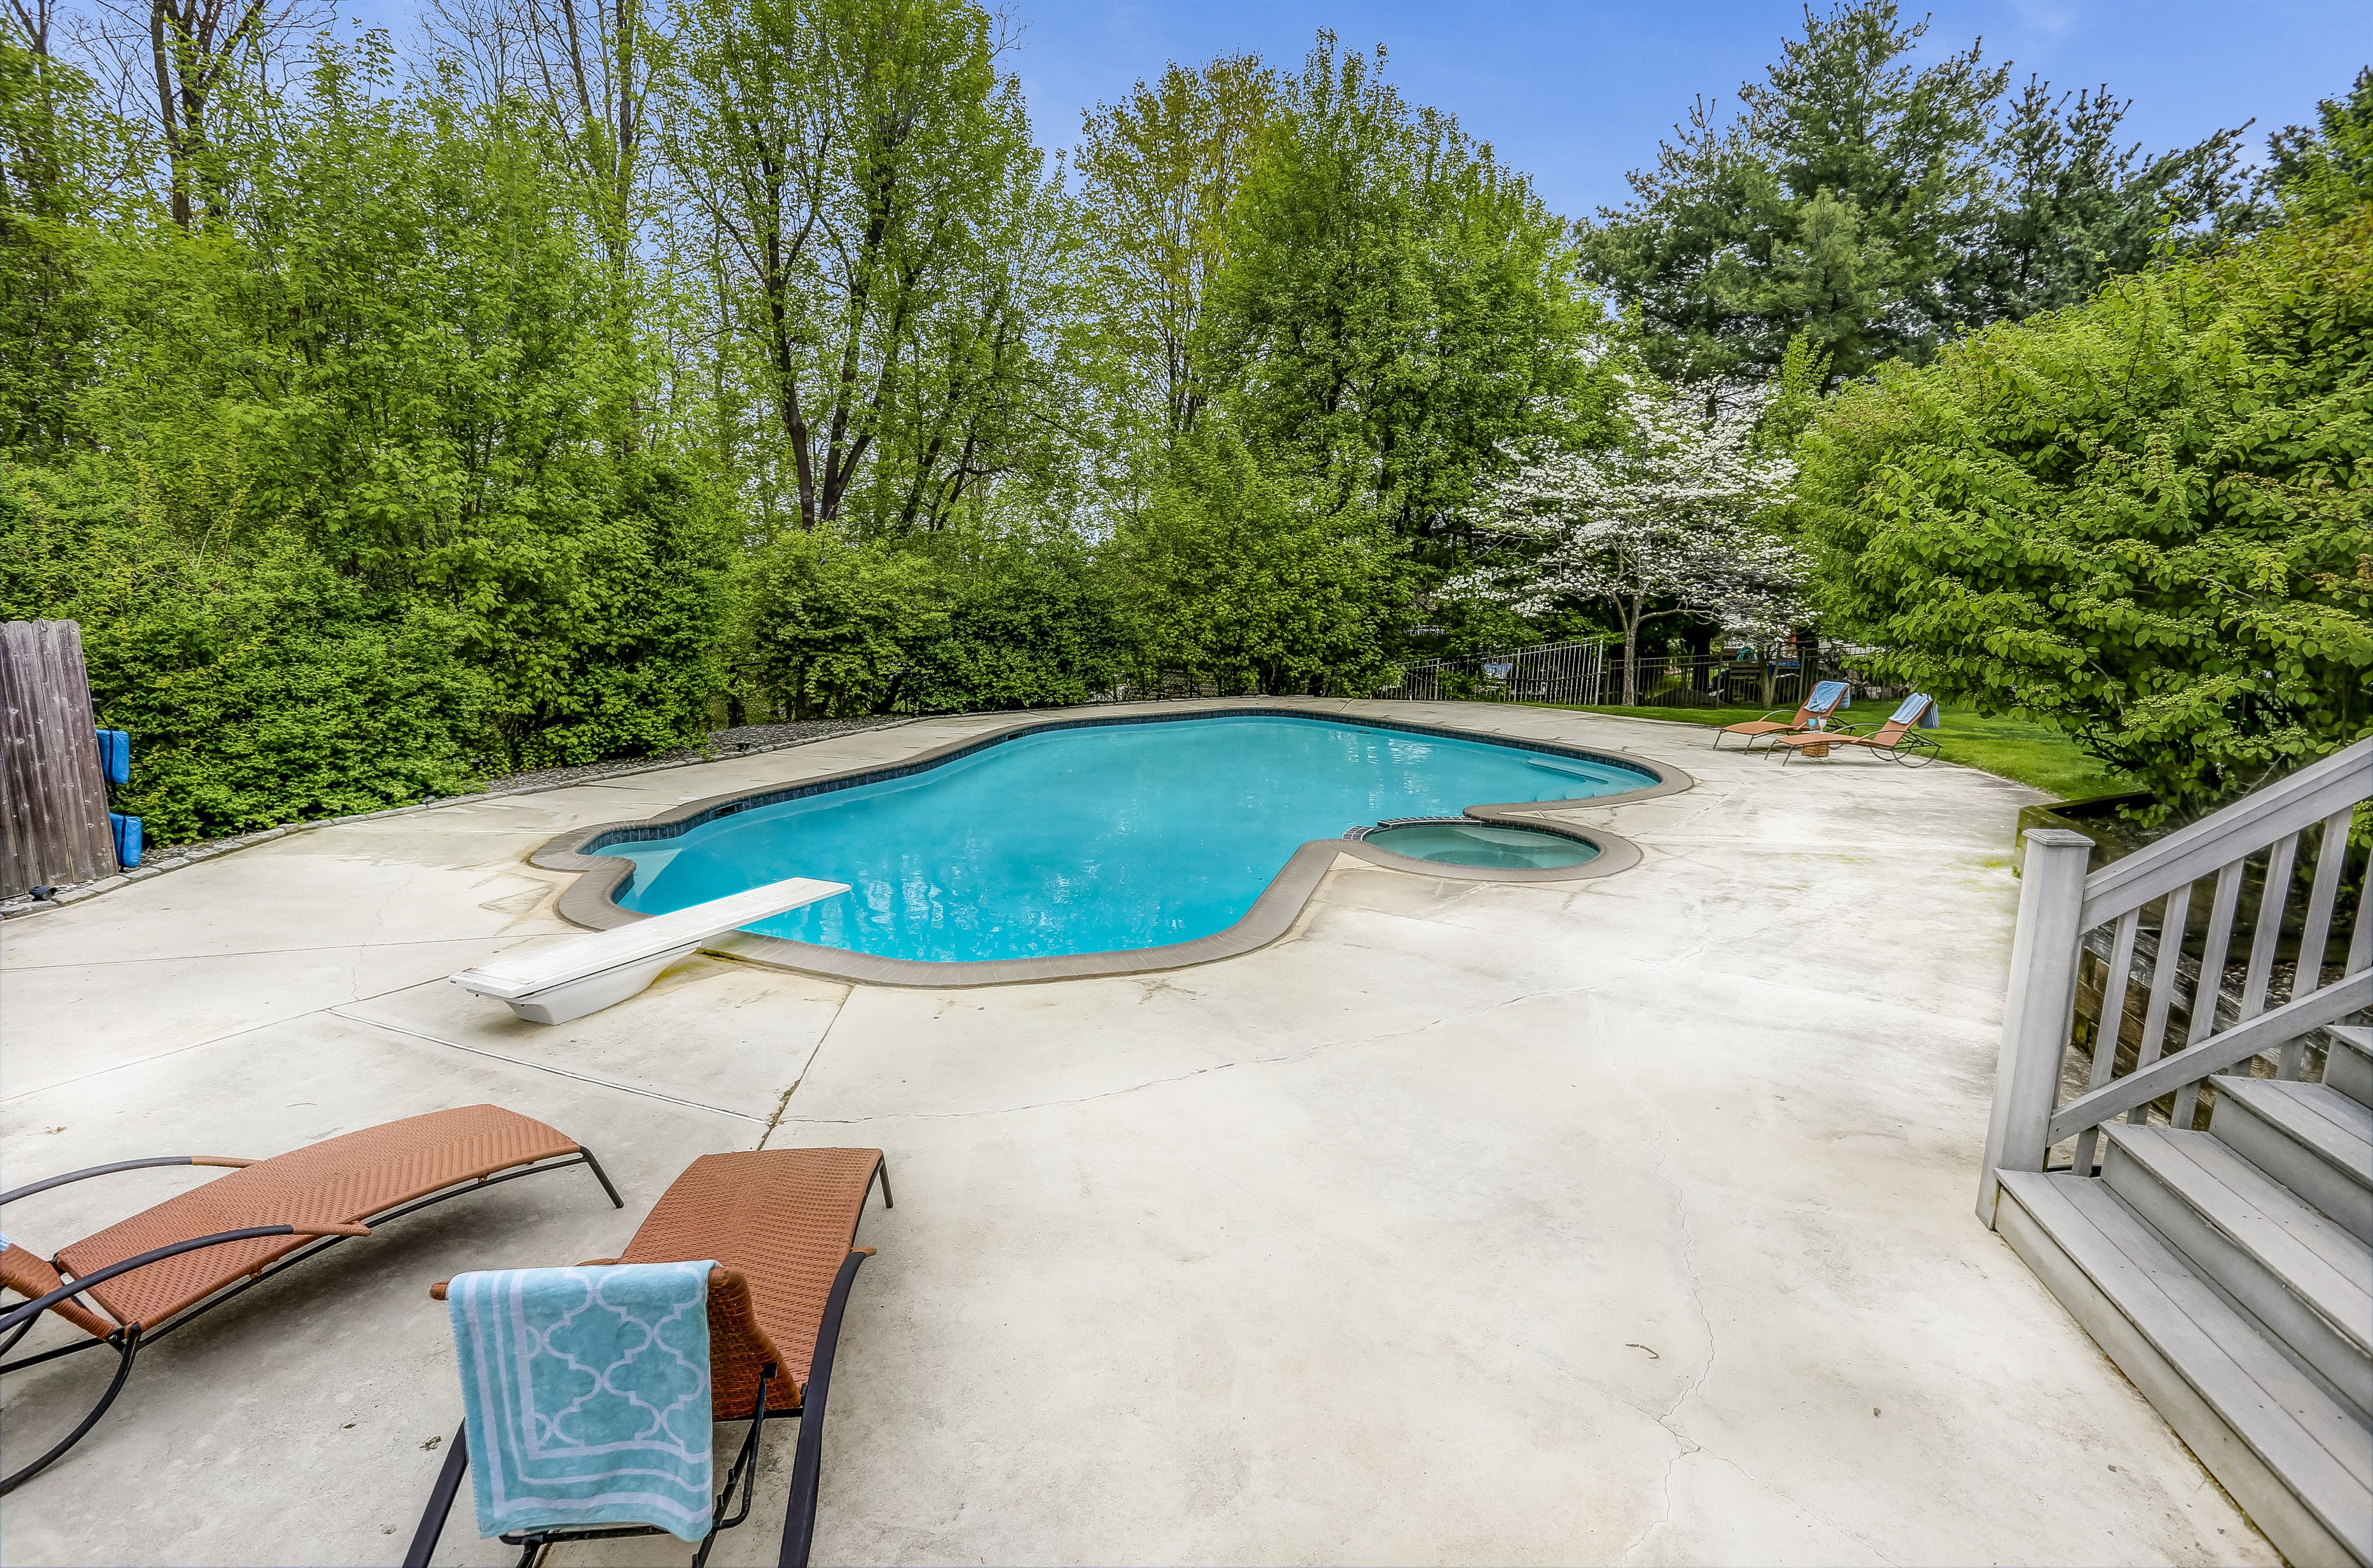 Backyard entertaining dream with heated pool, hot tub and huge deck!